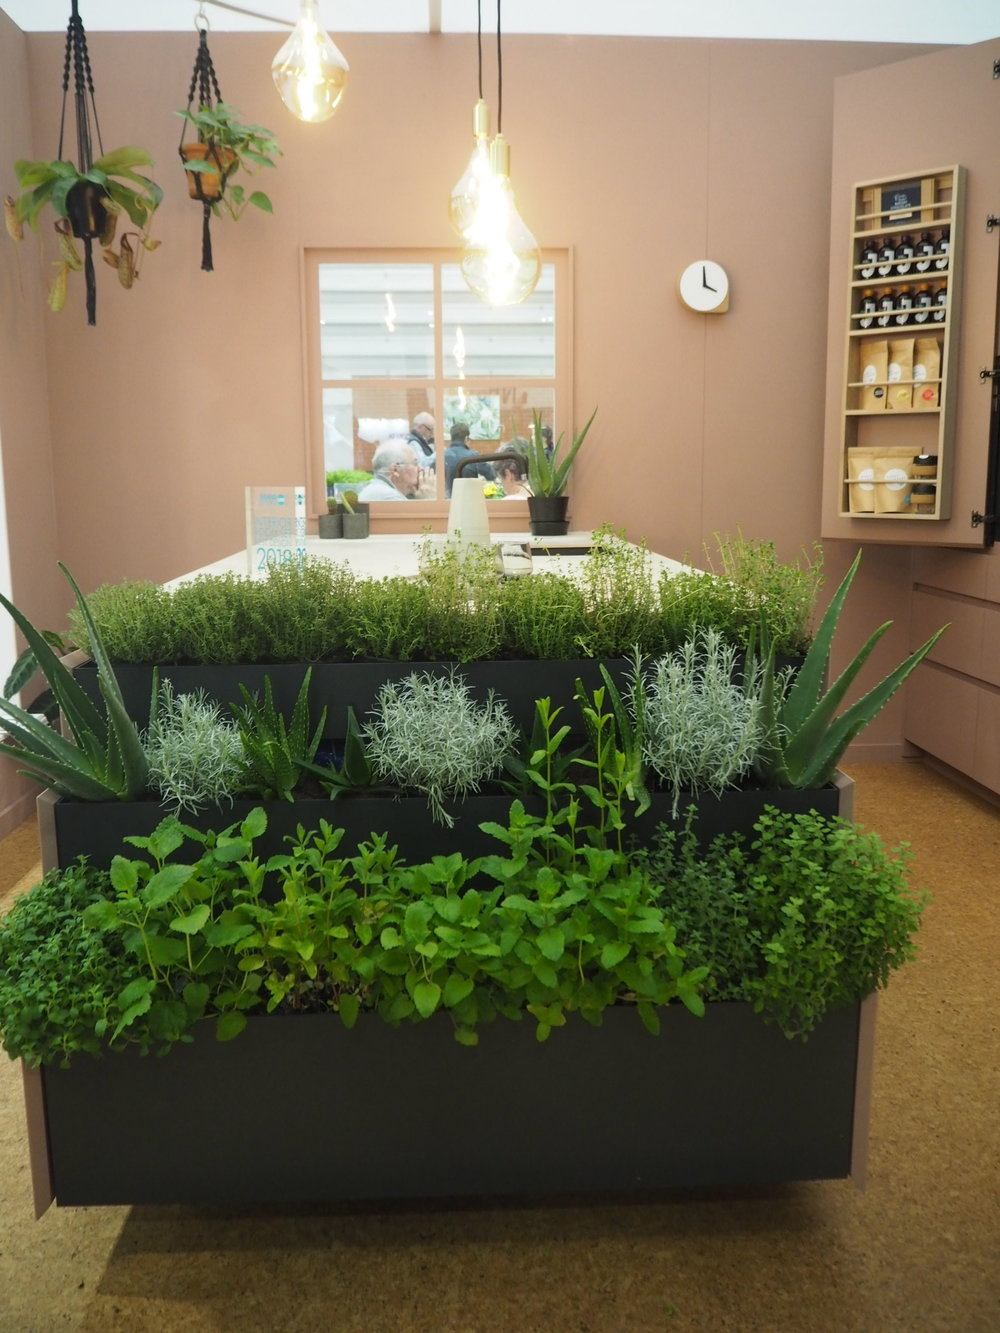 The herb garden and cork flooring